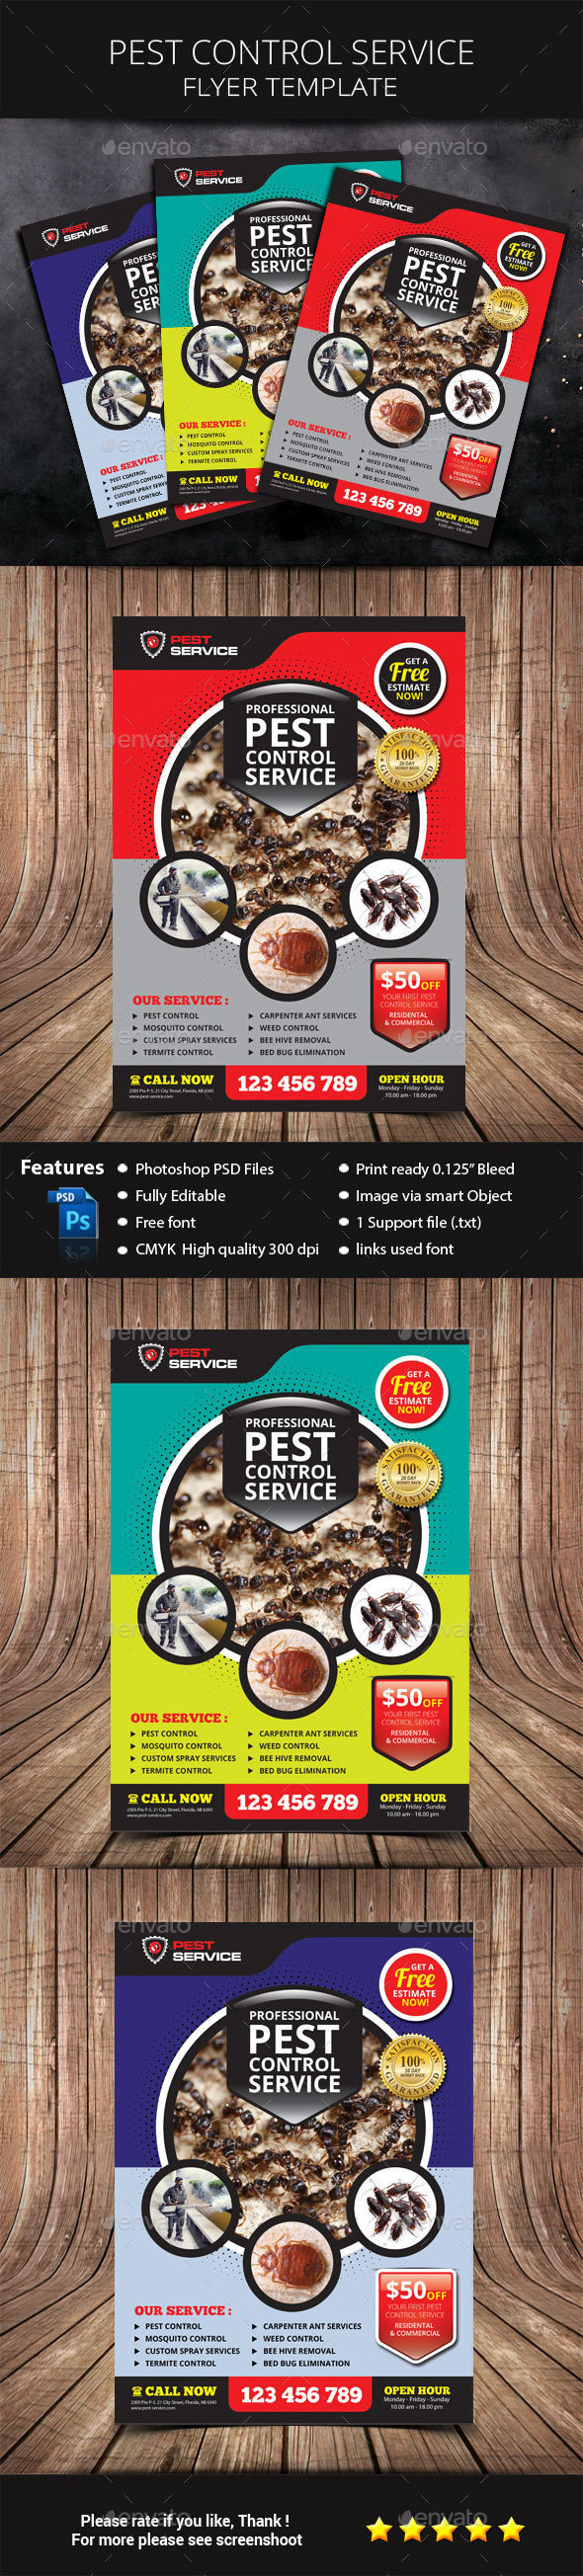 Pest Control Service Flyer - Commerce Flyers